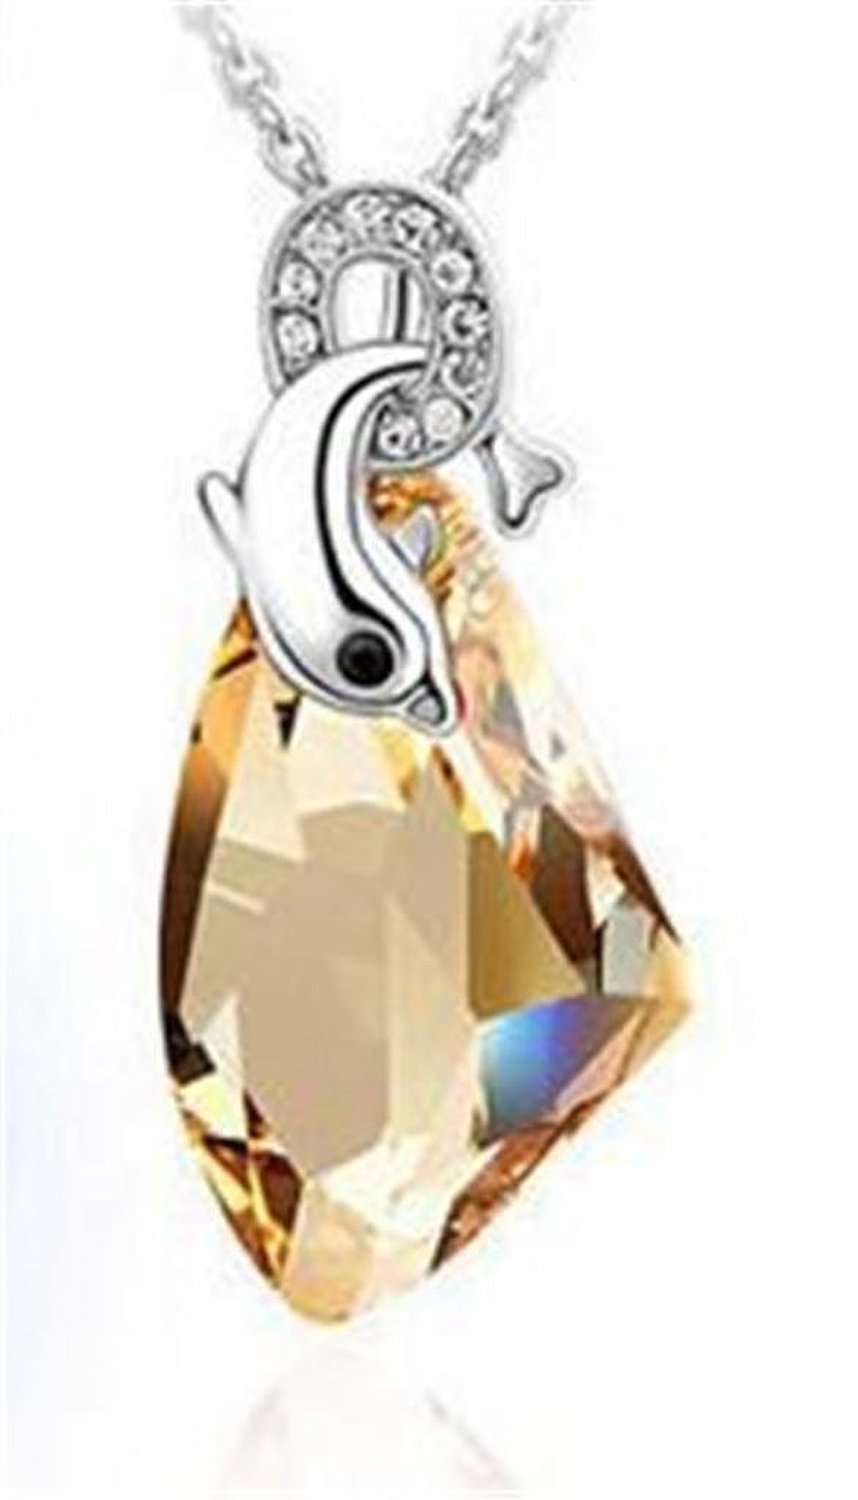 Amazon.com: loy jewelry dolphin swarovski elements crystal pendant necklace for women w 18k white gold plated chain, golden: jewelry